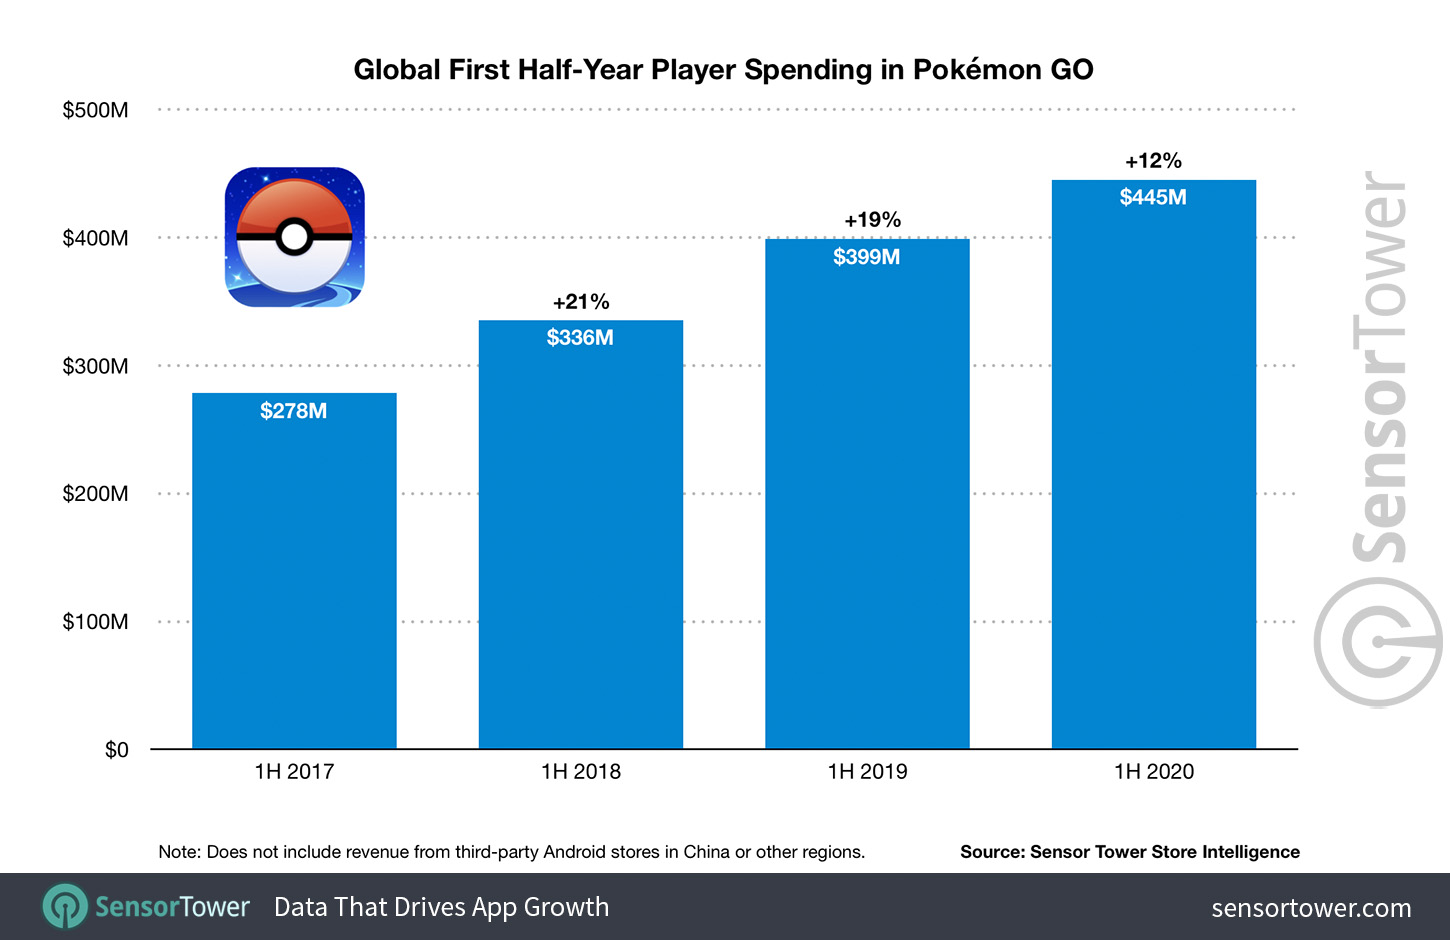 Global First Half-Year Player Spending in Pokémon GO